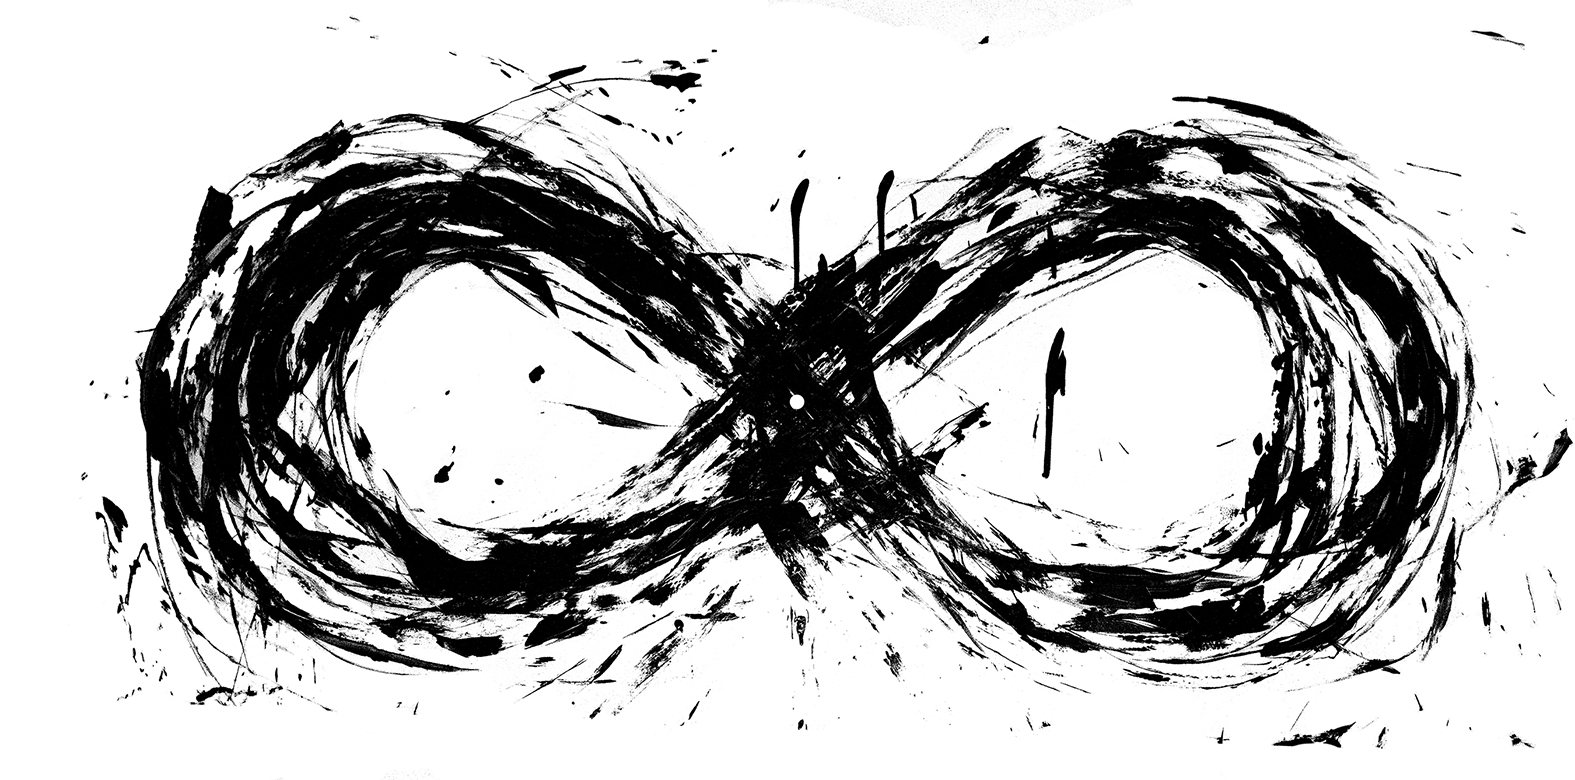 Infinity Emerging & Returning to its Own Centre (Archival Print) 36 x 24 inches, $222